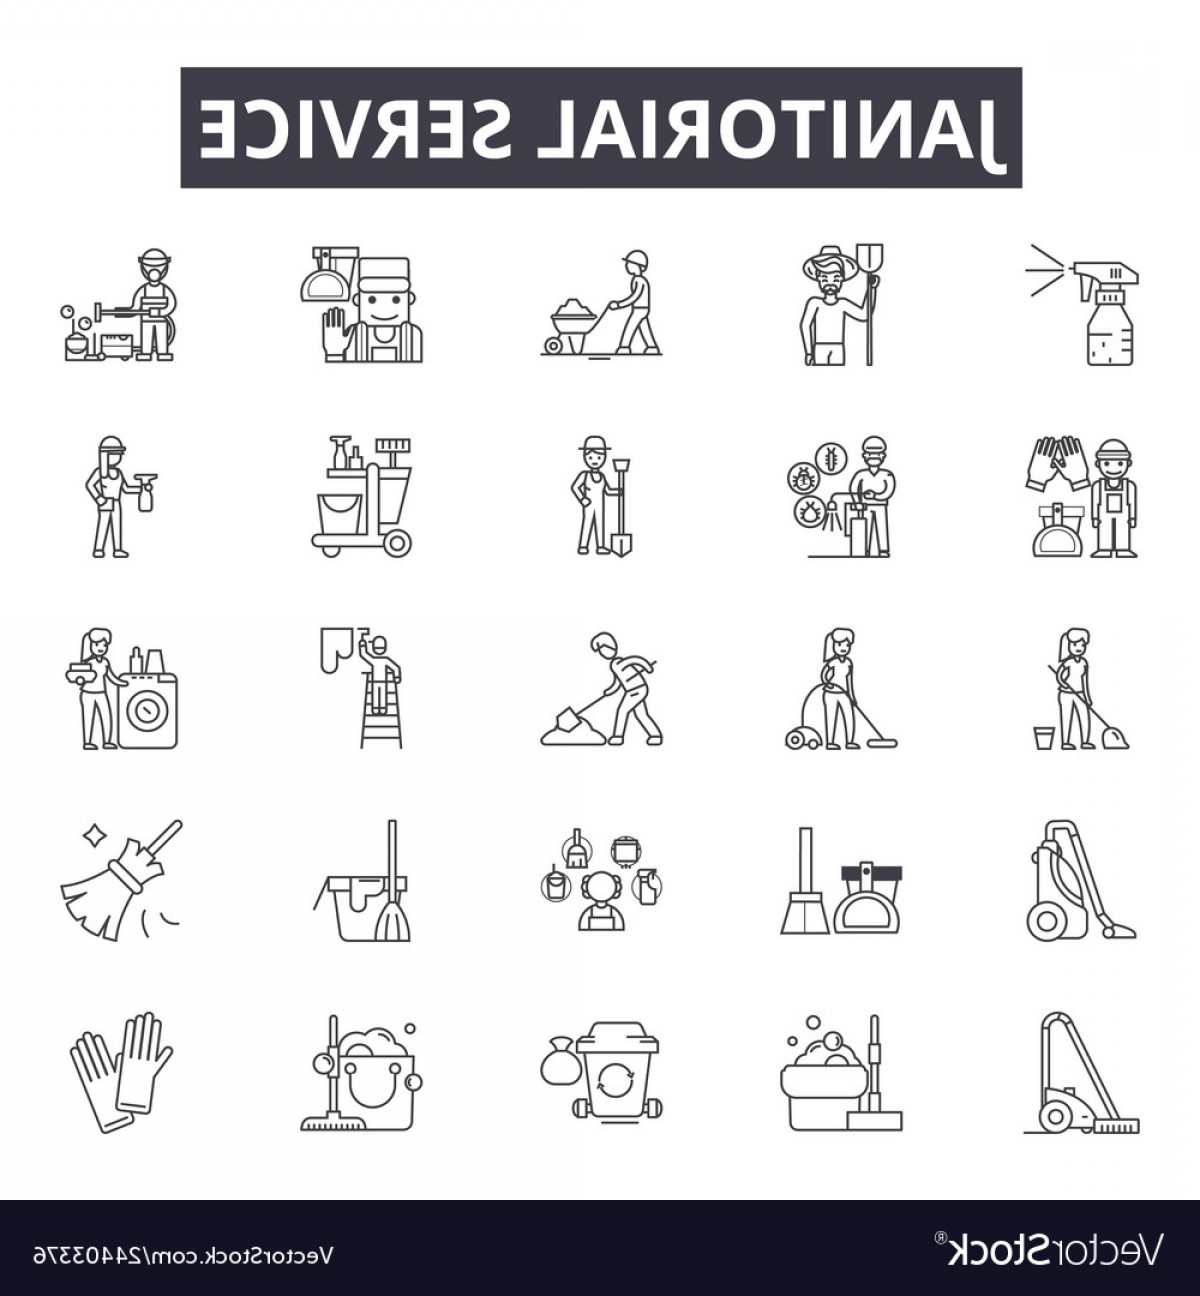 Janitorial Vector: Janitorial Service Line Icons For Web And Mobile Vector